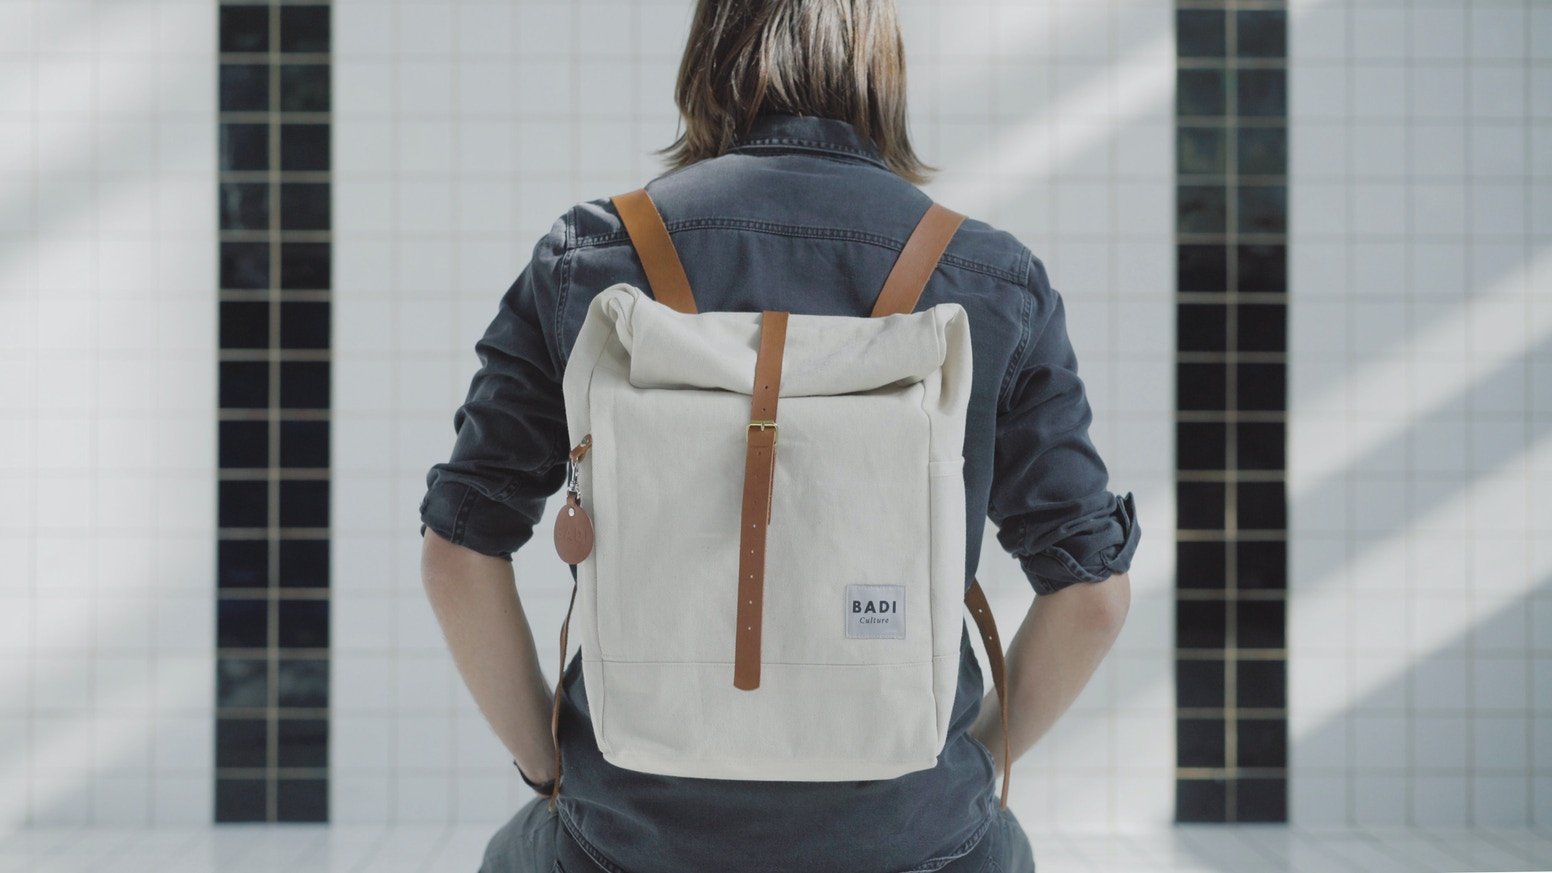 This is a simple and functional backpack. I've reduced it to be useful, so you can wear it everyday for every situation. Just stunning!